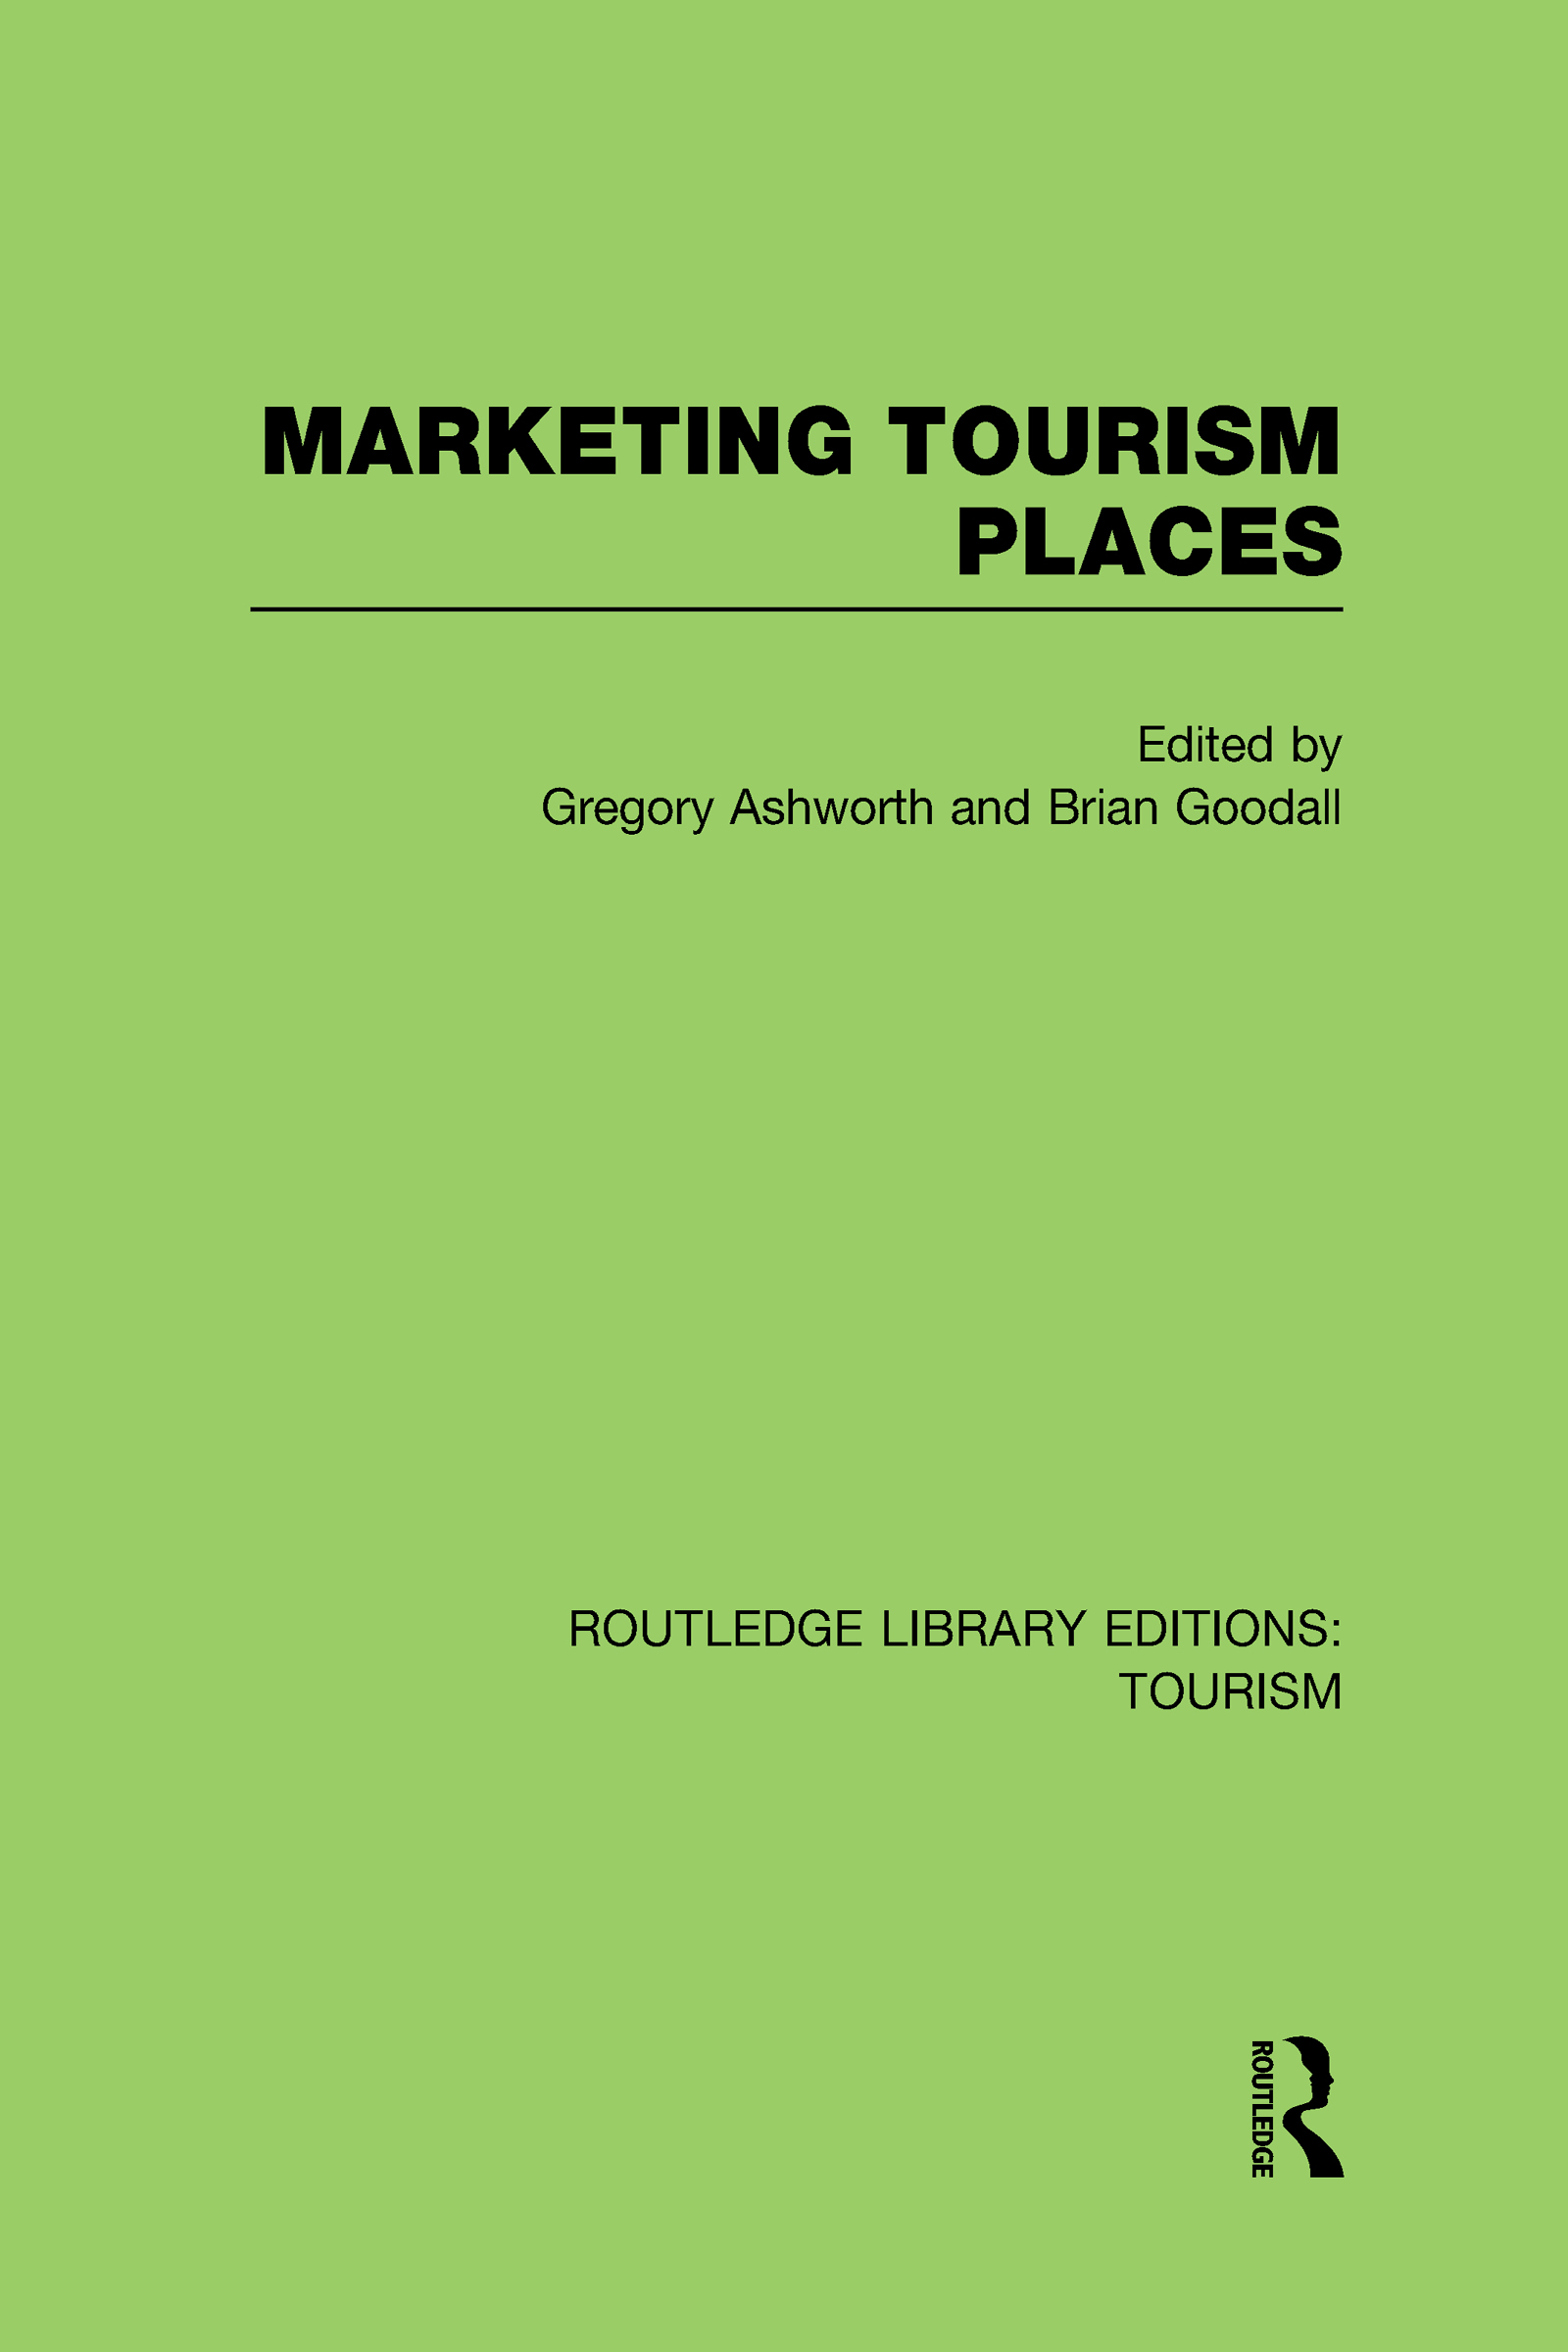 Research into Tourism Markets: Some Frisian Experiences